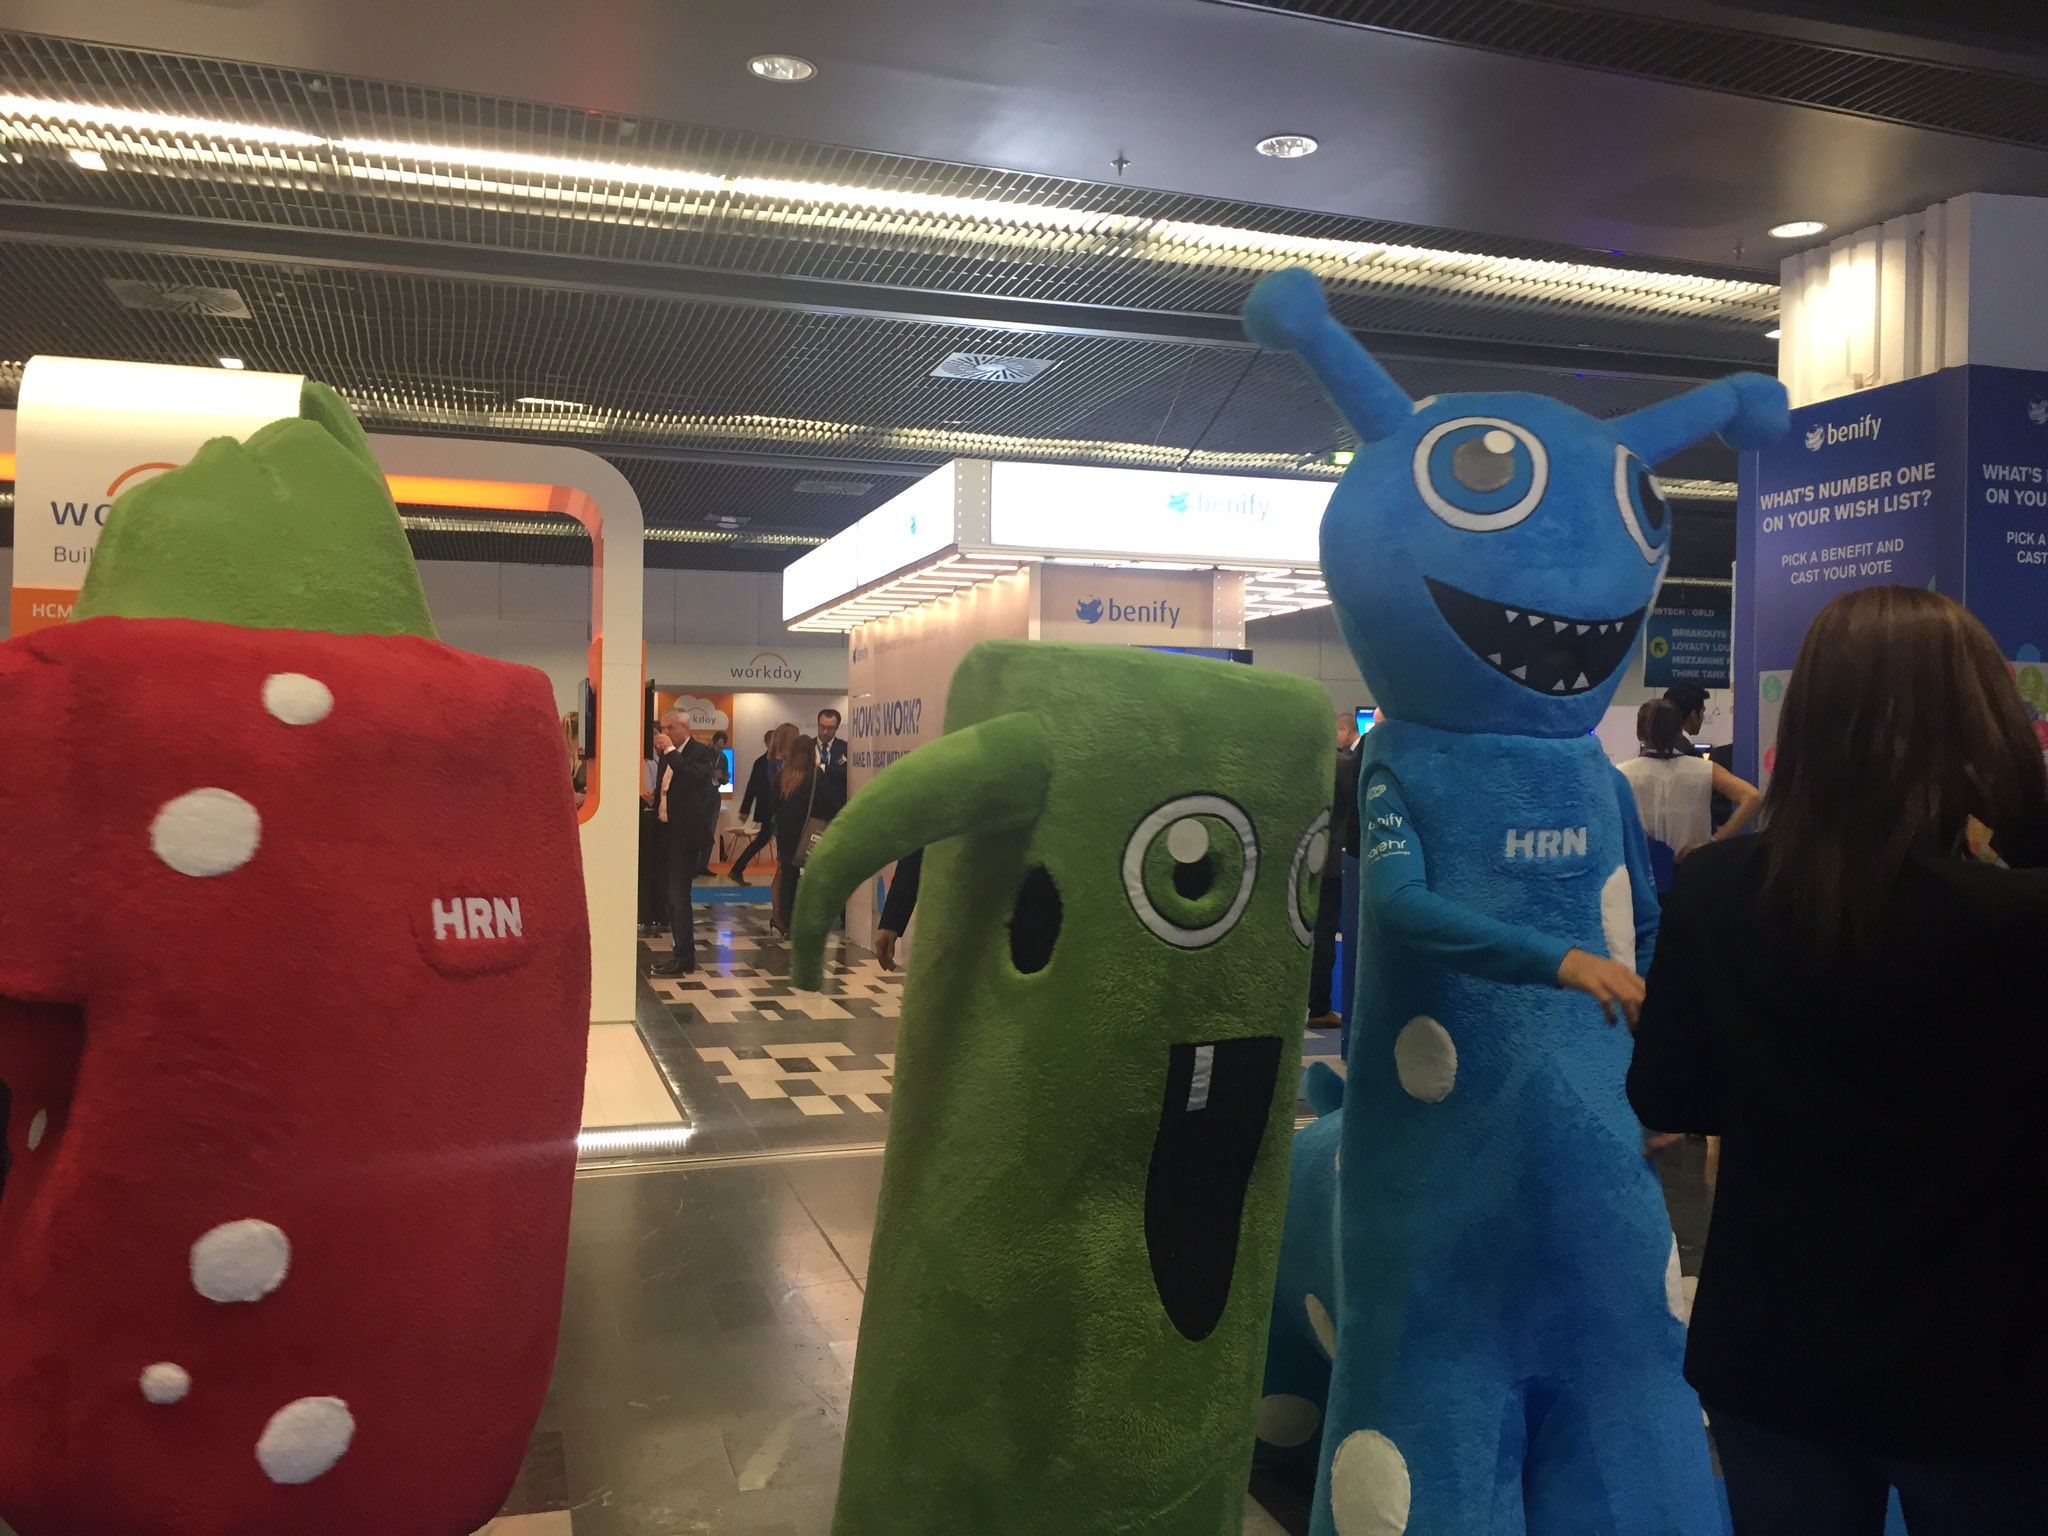 Even the #hrtechworld mascottes are rocking HR at #ngahr https://t.co/MODssGCV3R